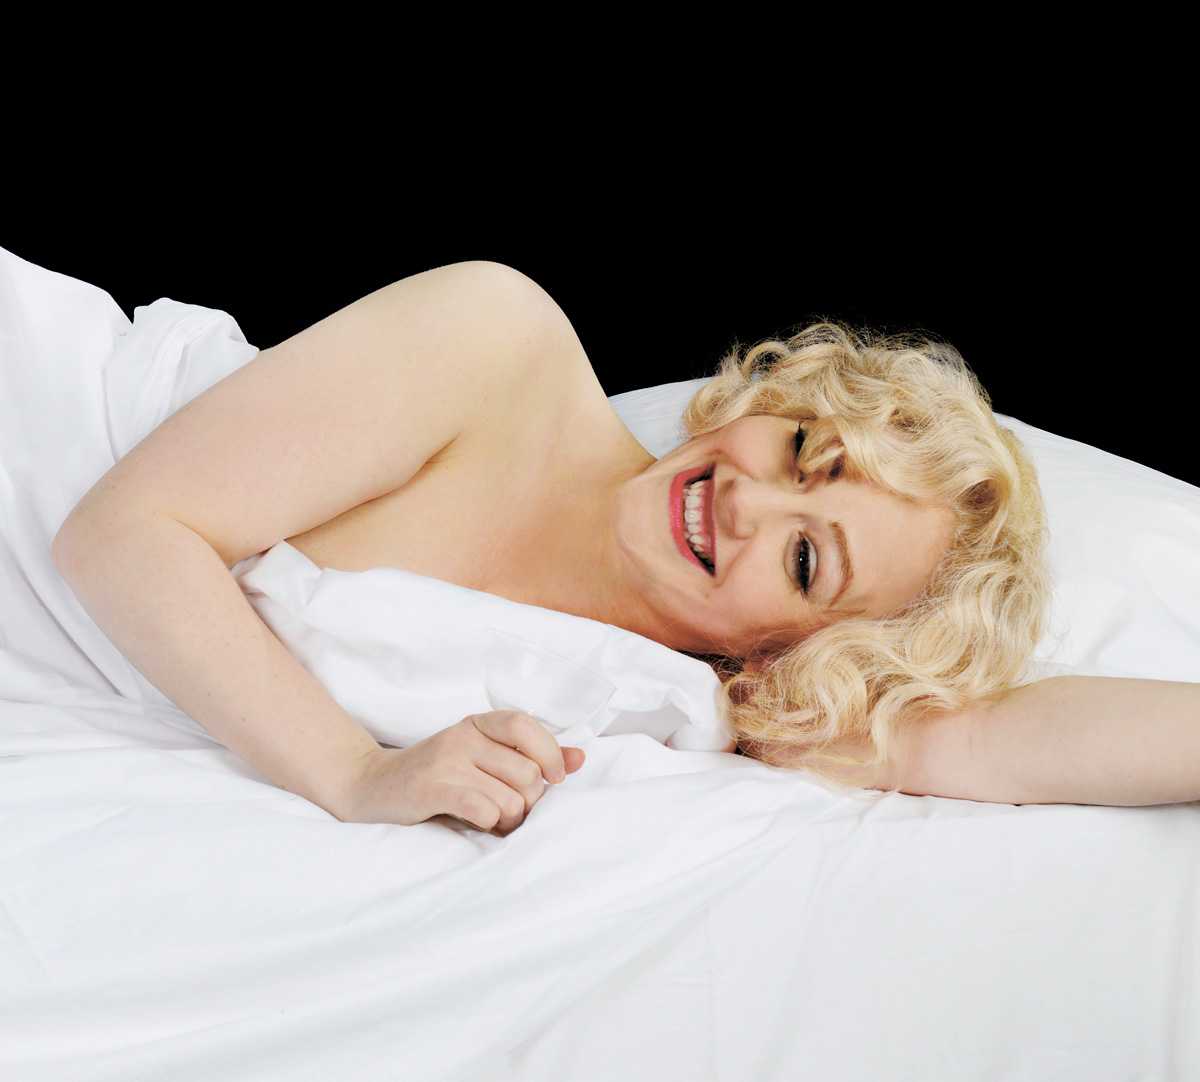 Lizzie Wort is Marilyn Monroe in The Unremarkable Death of Marilyn Monroe at Harlow Pl